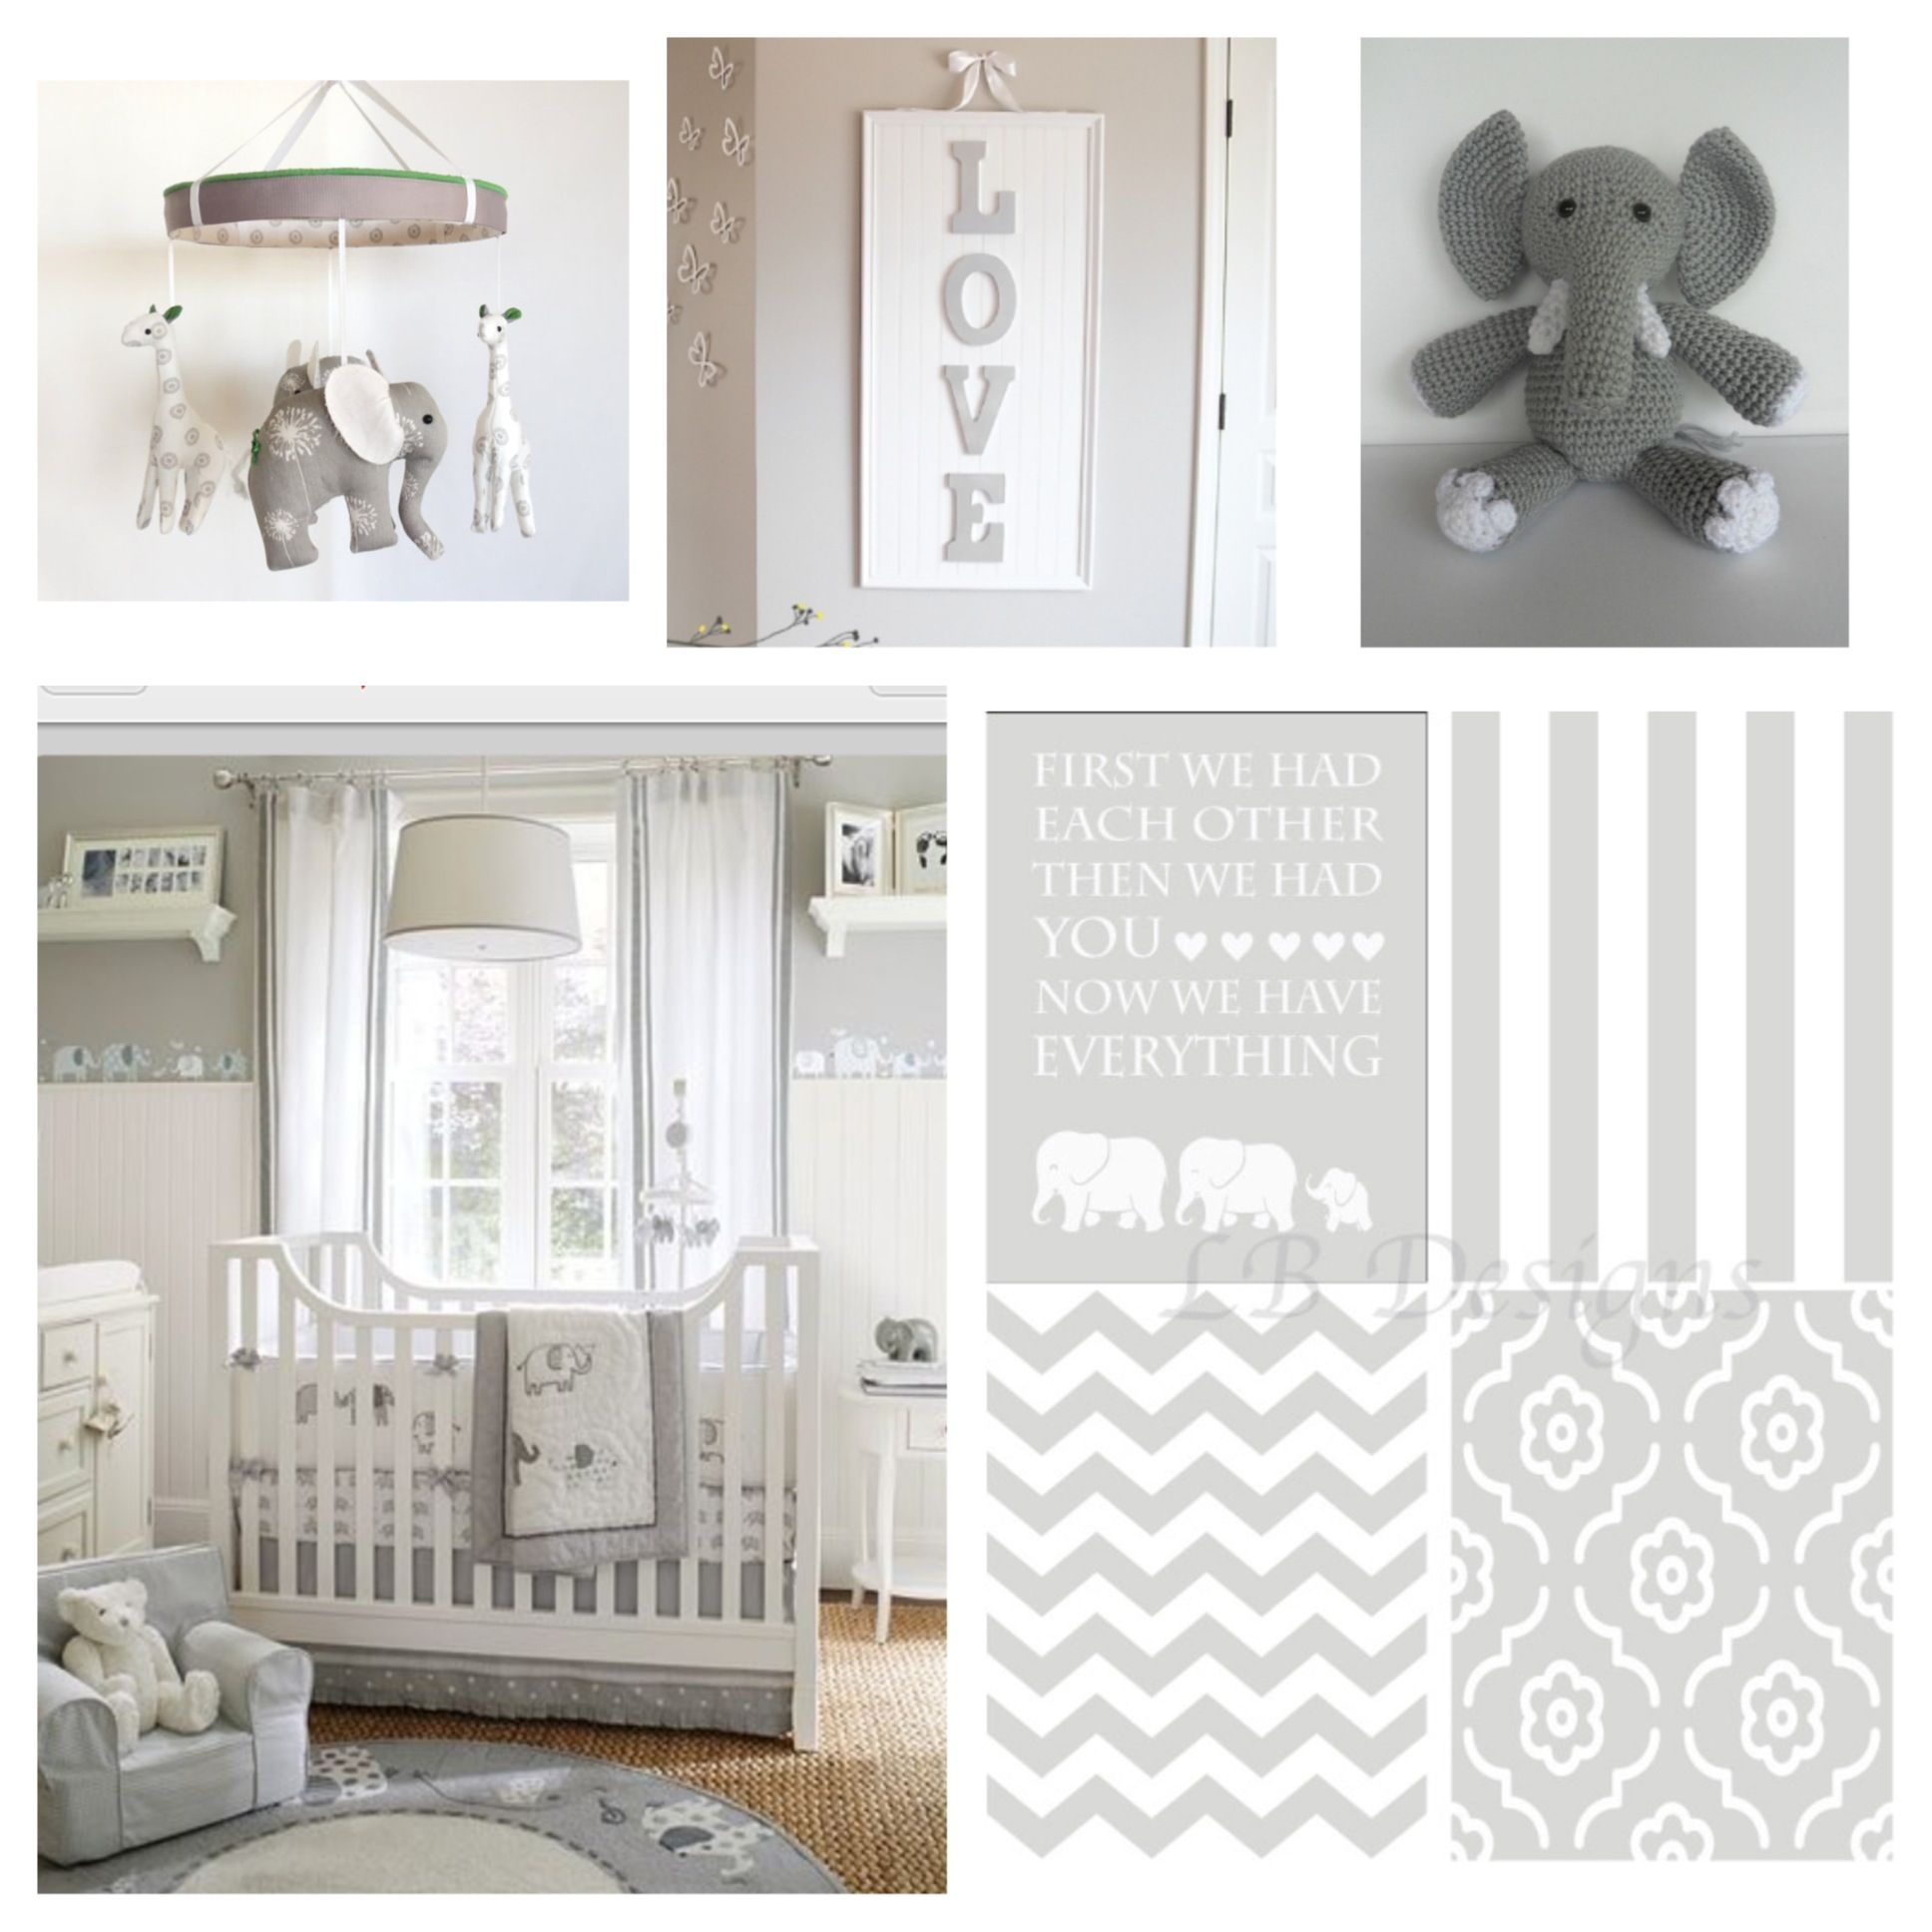 Elephant Twin Nursery Wall Art Nursery Room Decor For Twins: Gender Neutral Gray And White Elephant Nursery. Nursery